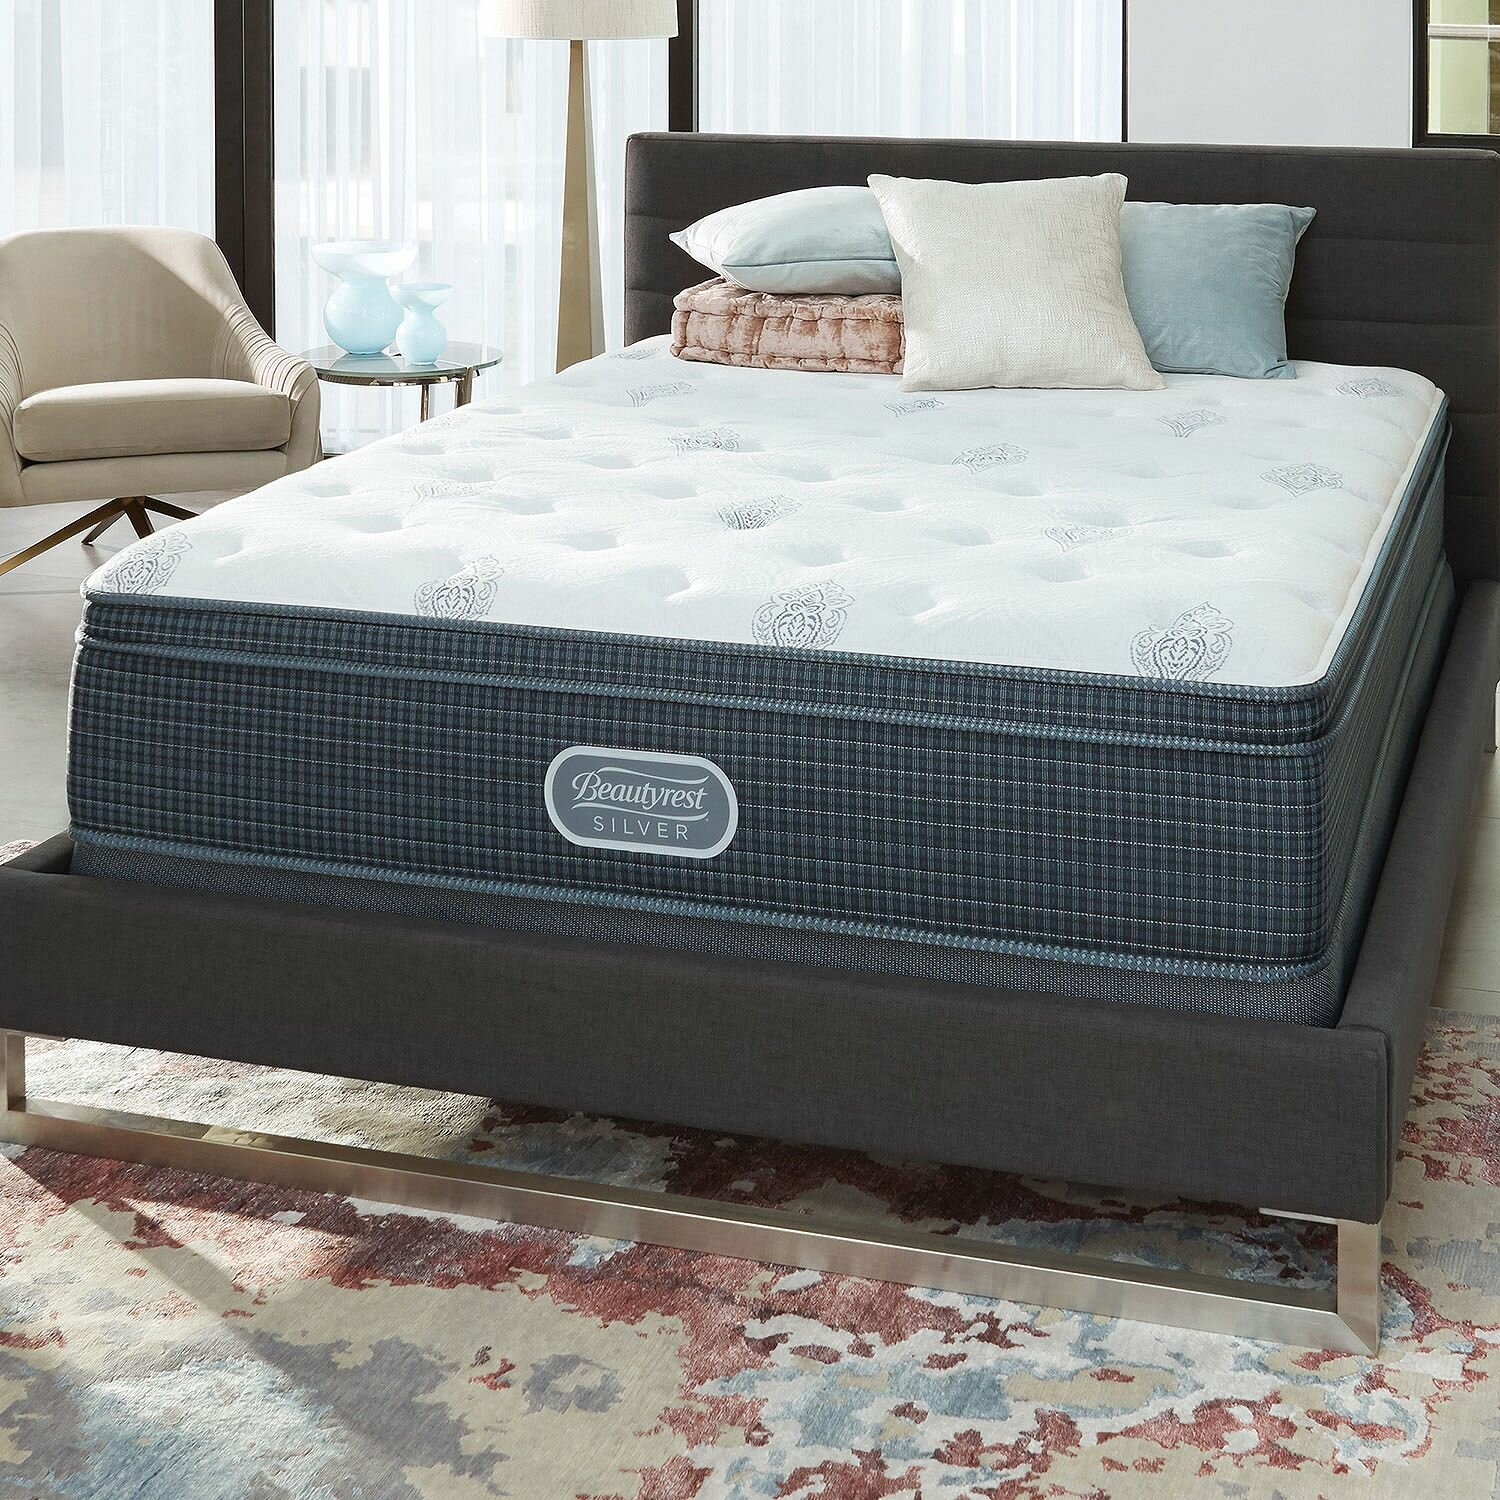 Simmons Beautyrest Beautyrest Silver 12 Medium Innerspring Mattress